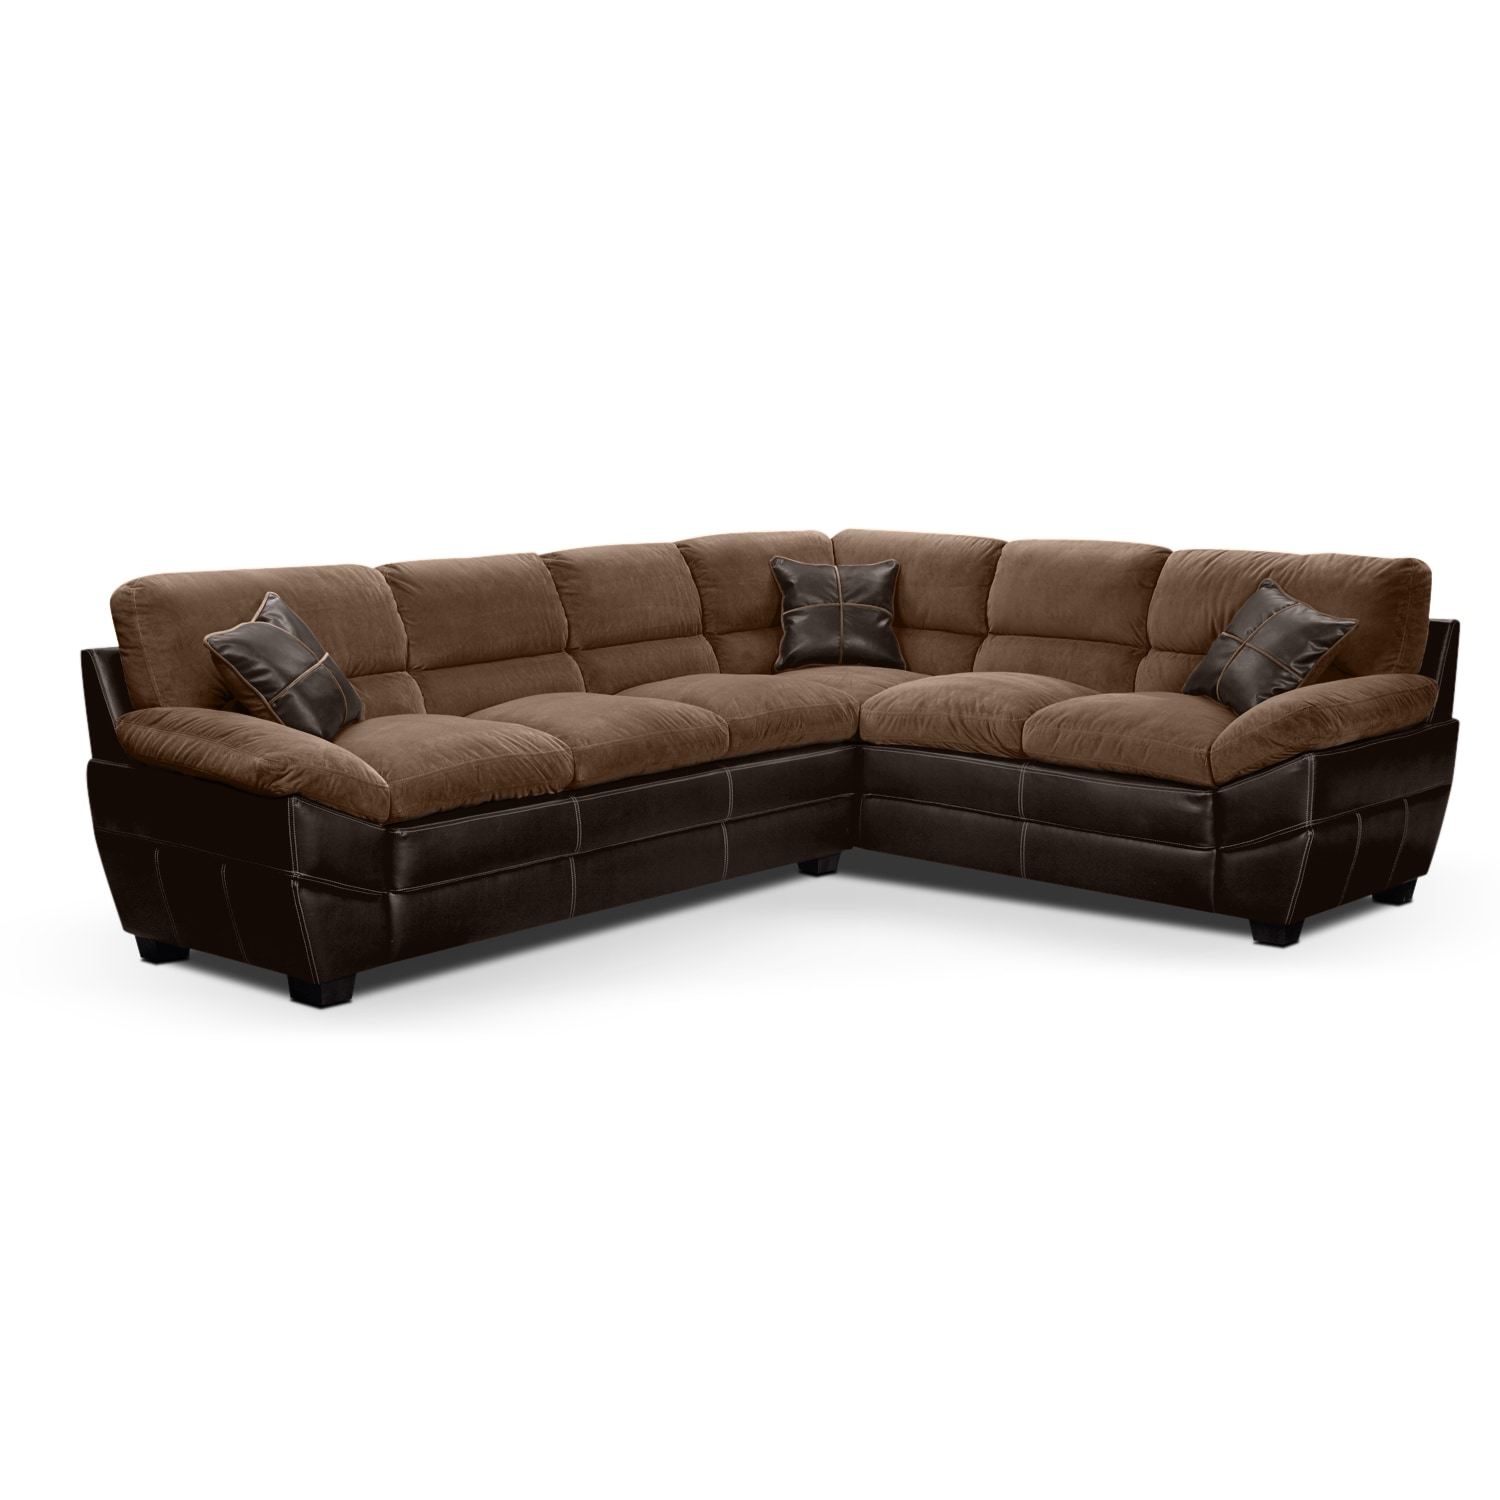 Chandler Beige II 2 Pc. Sectional